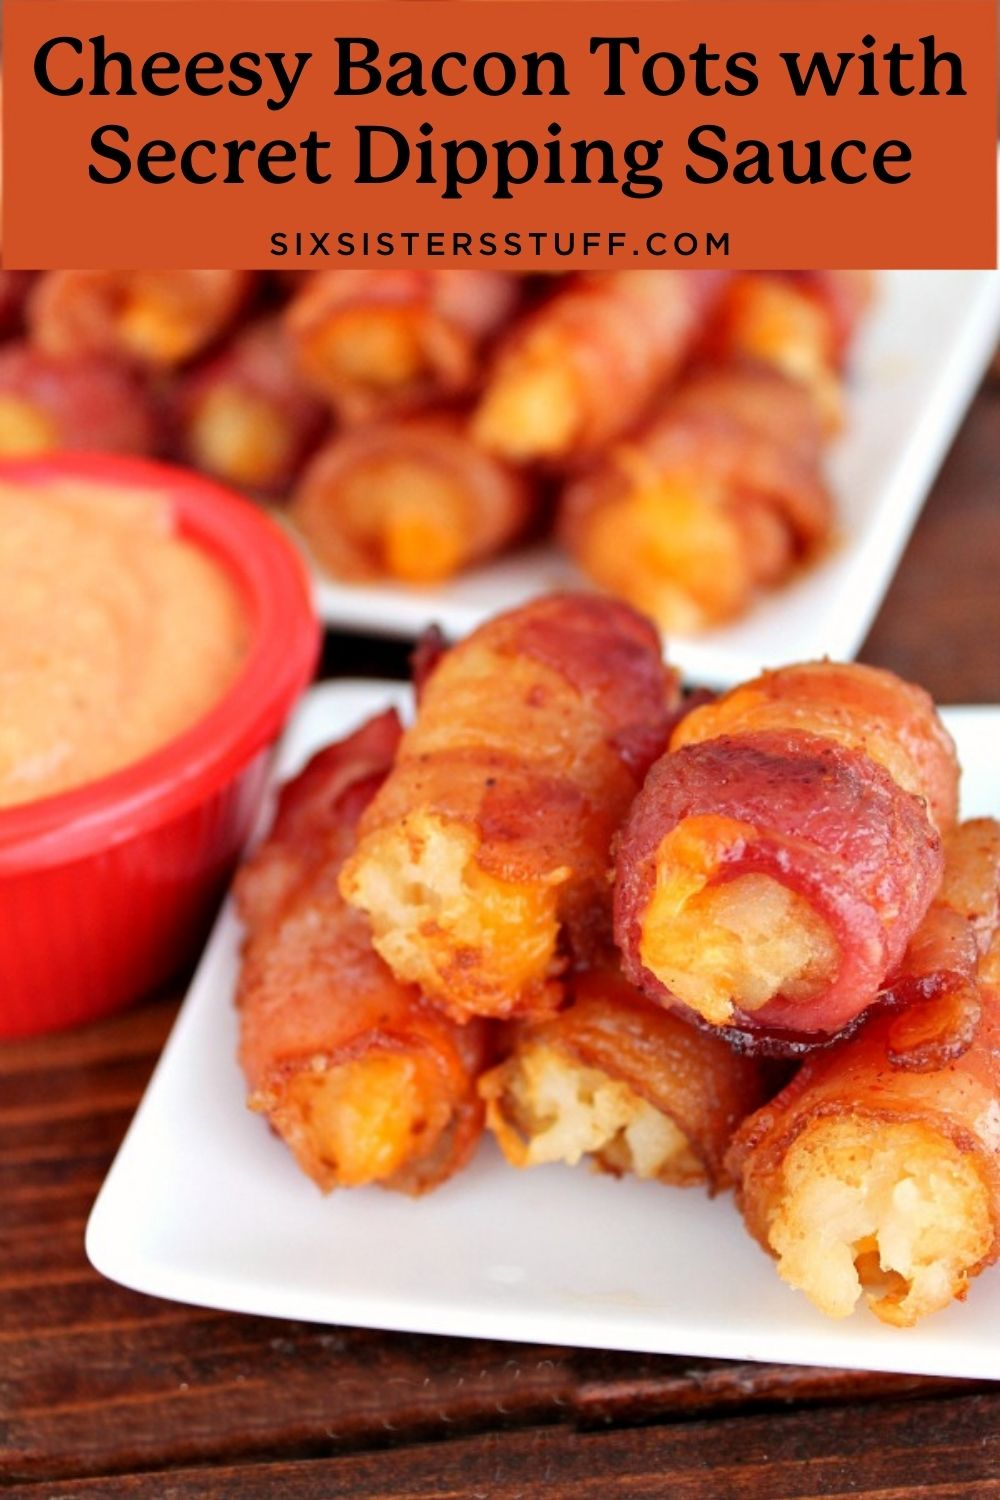 Cheesy Bacon Tots with Secret Dipping Sauce Recipe